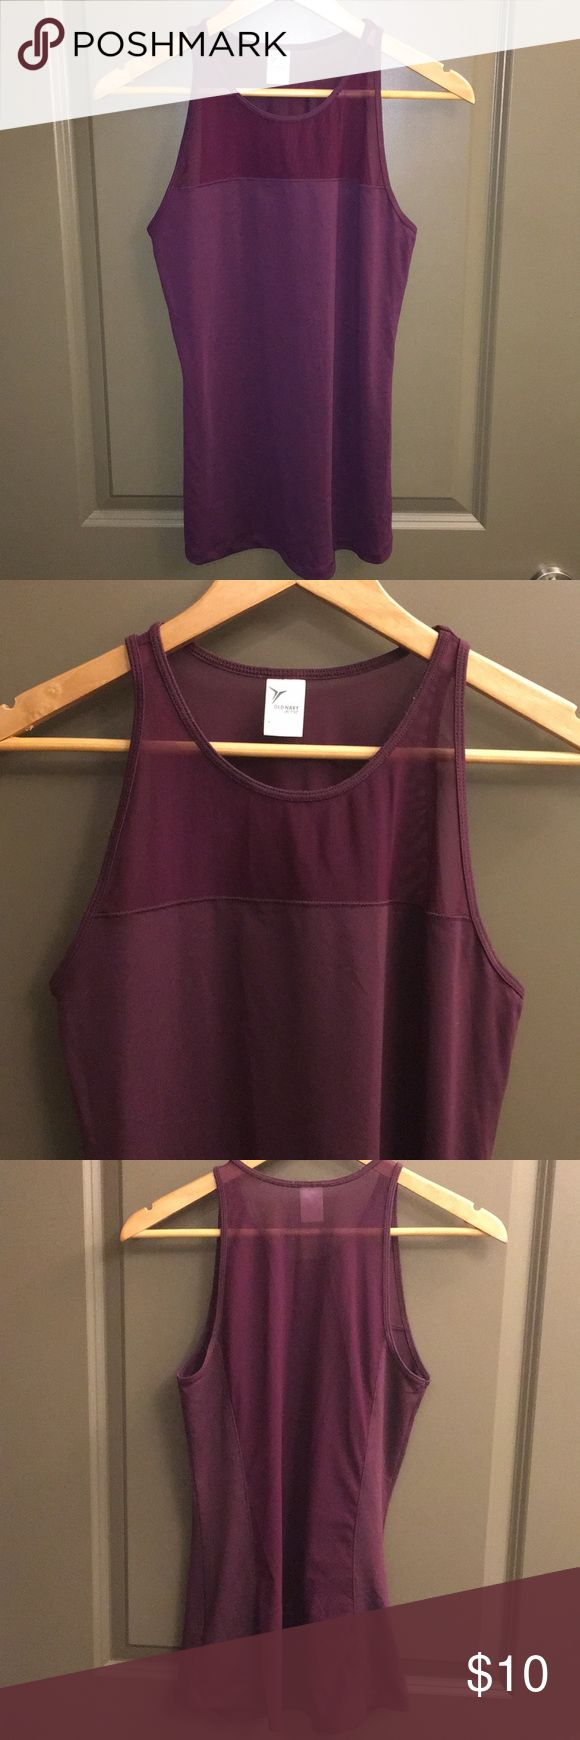 OLD NACY mesh workout tank Maroon work out tank with mesh neck insert, and whole back mesh (see last pic). Worn once. Old Navy Tops Tank Tops